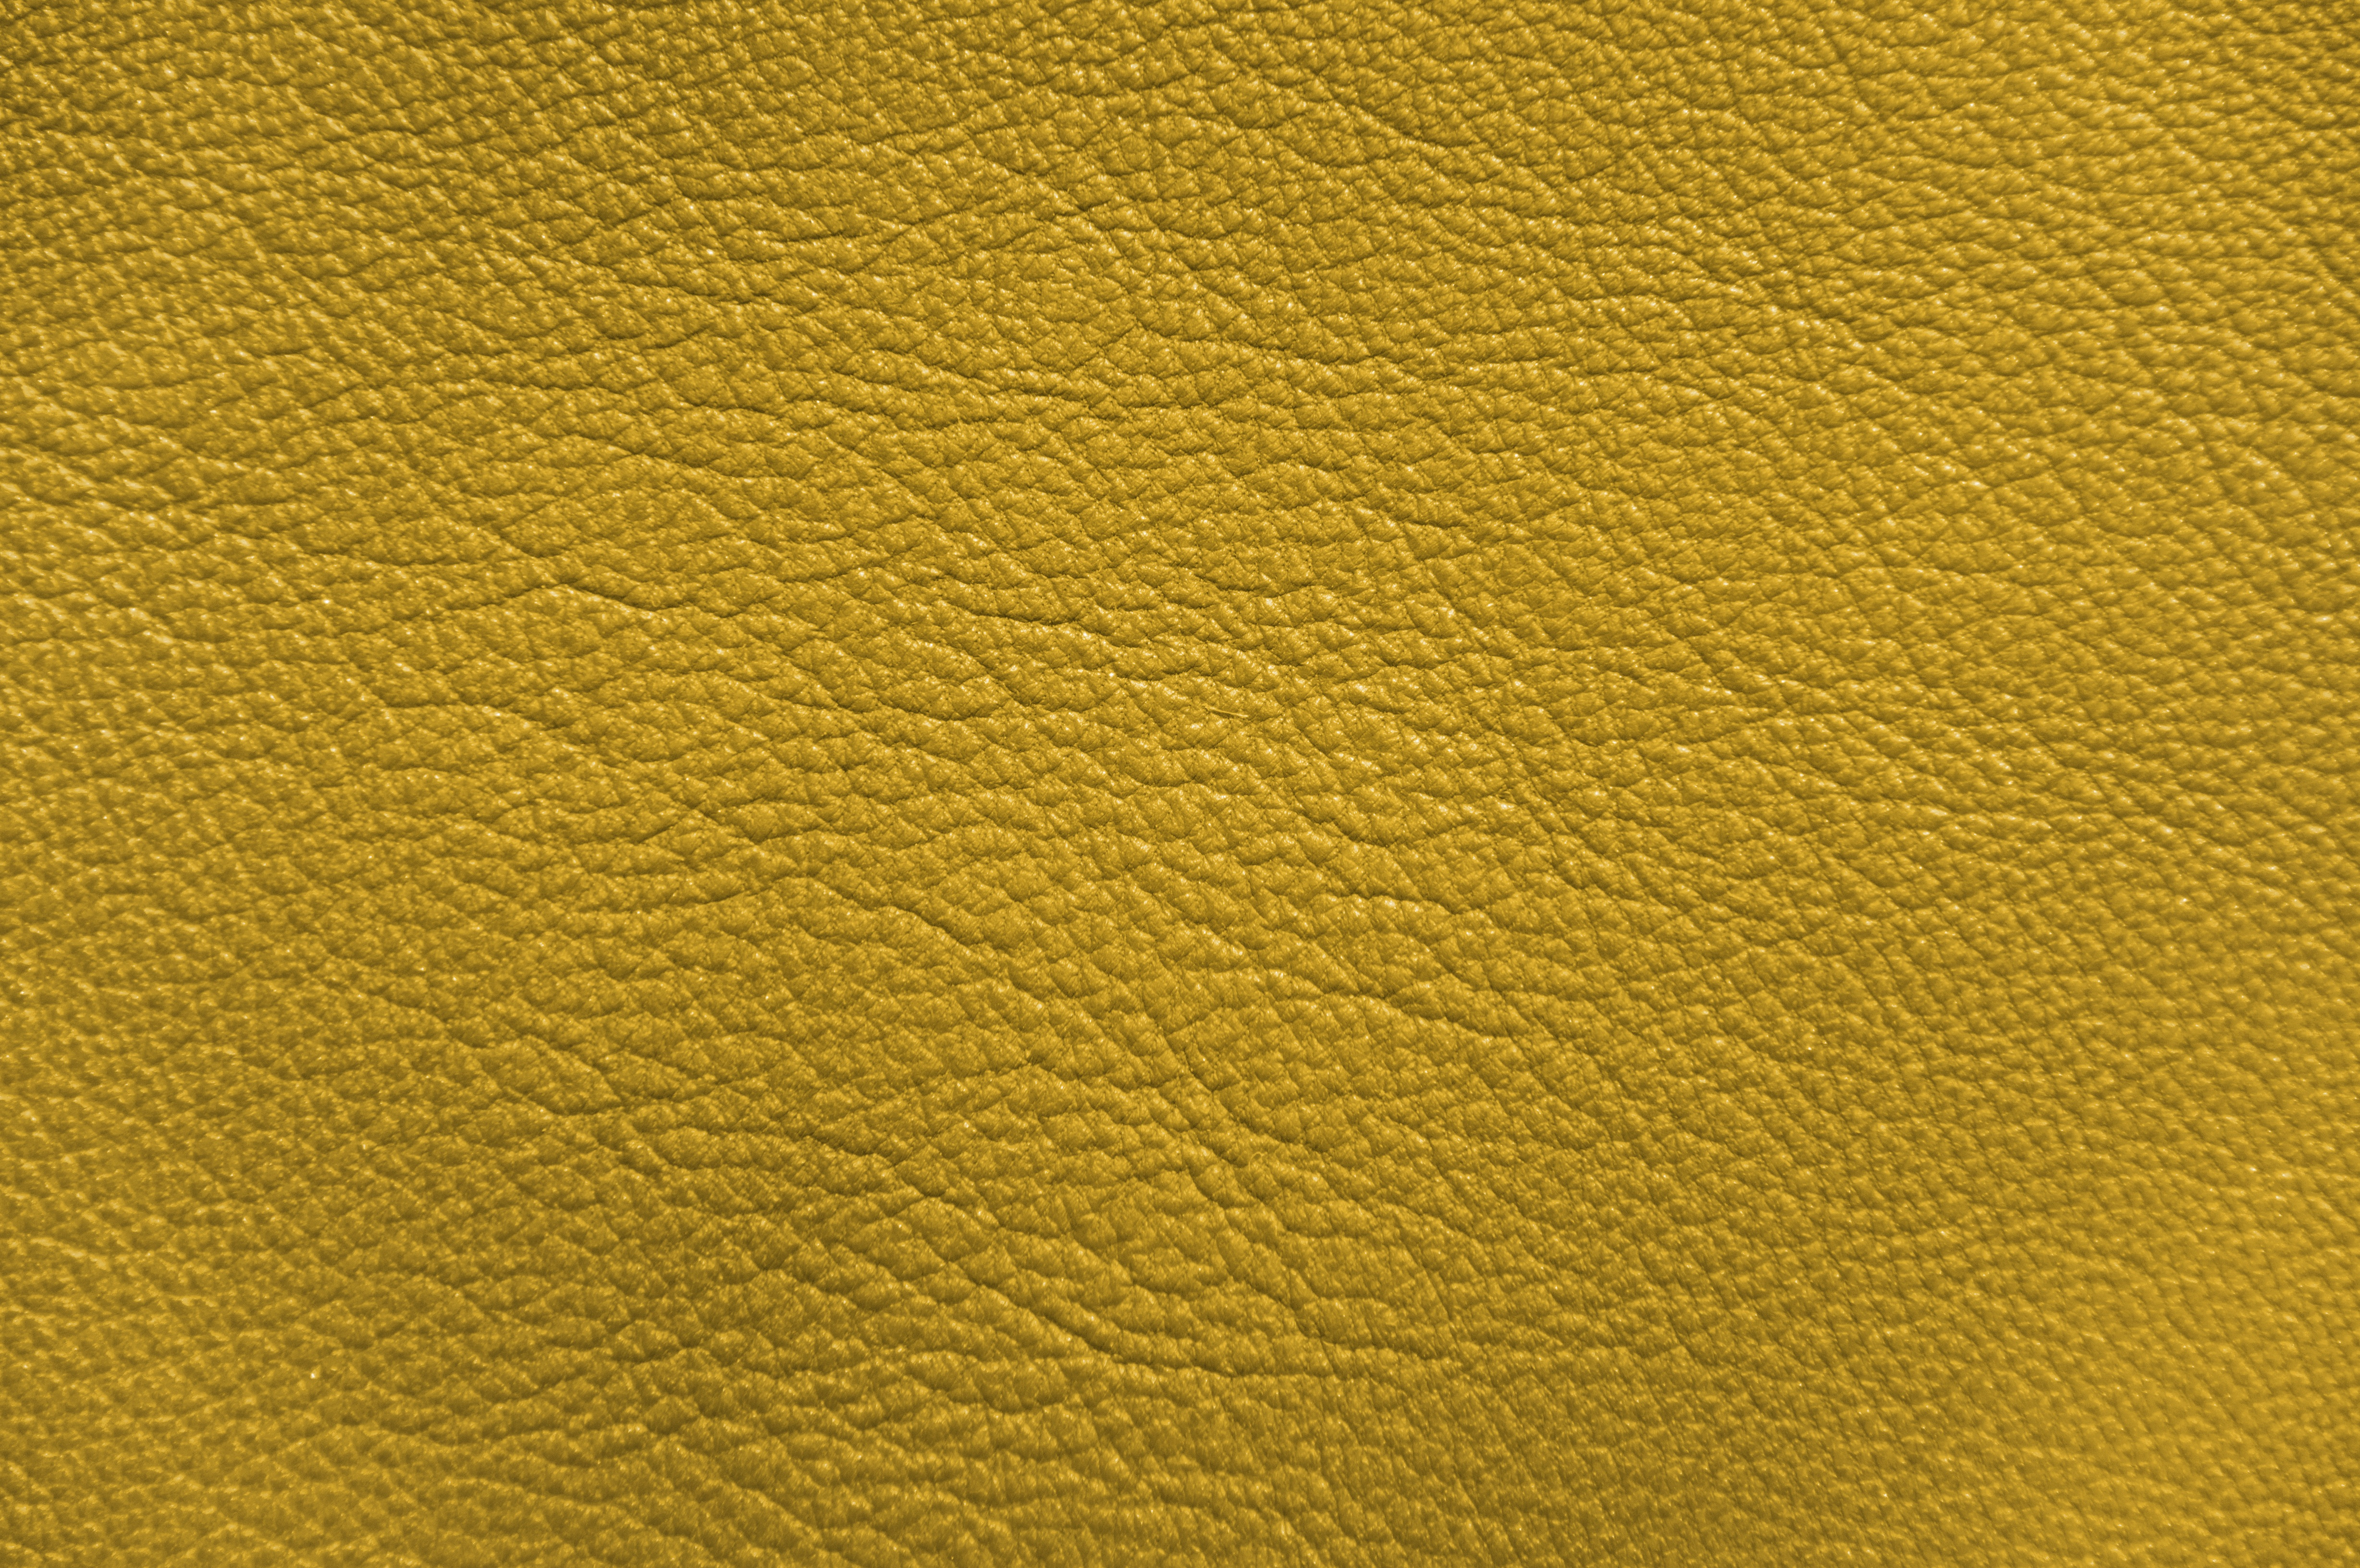 Yellow Leather 5k HD Photography 4k Wallpapers Images